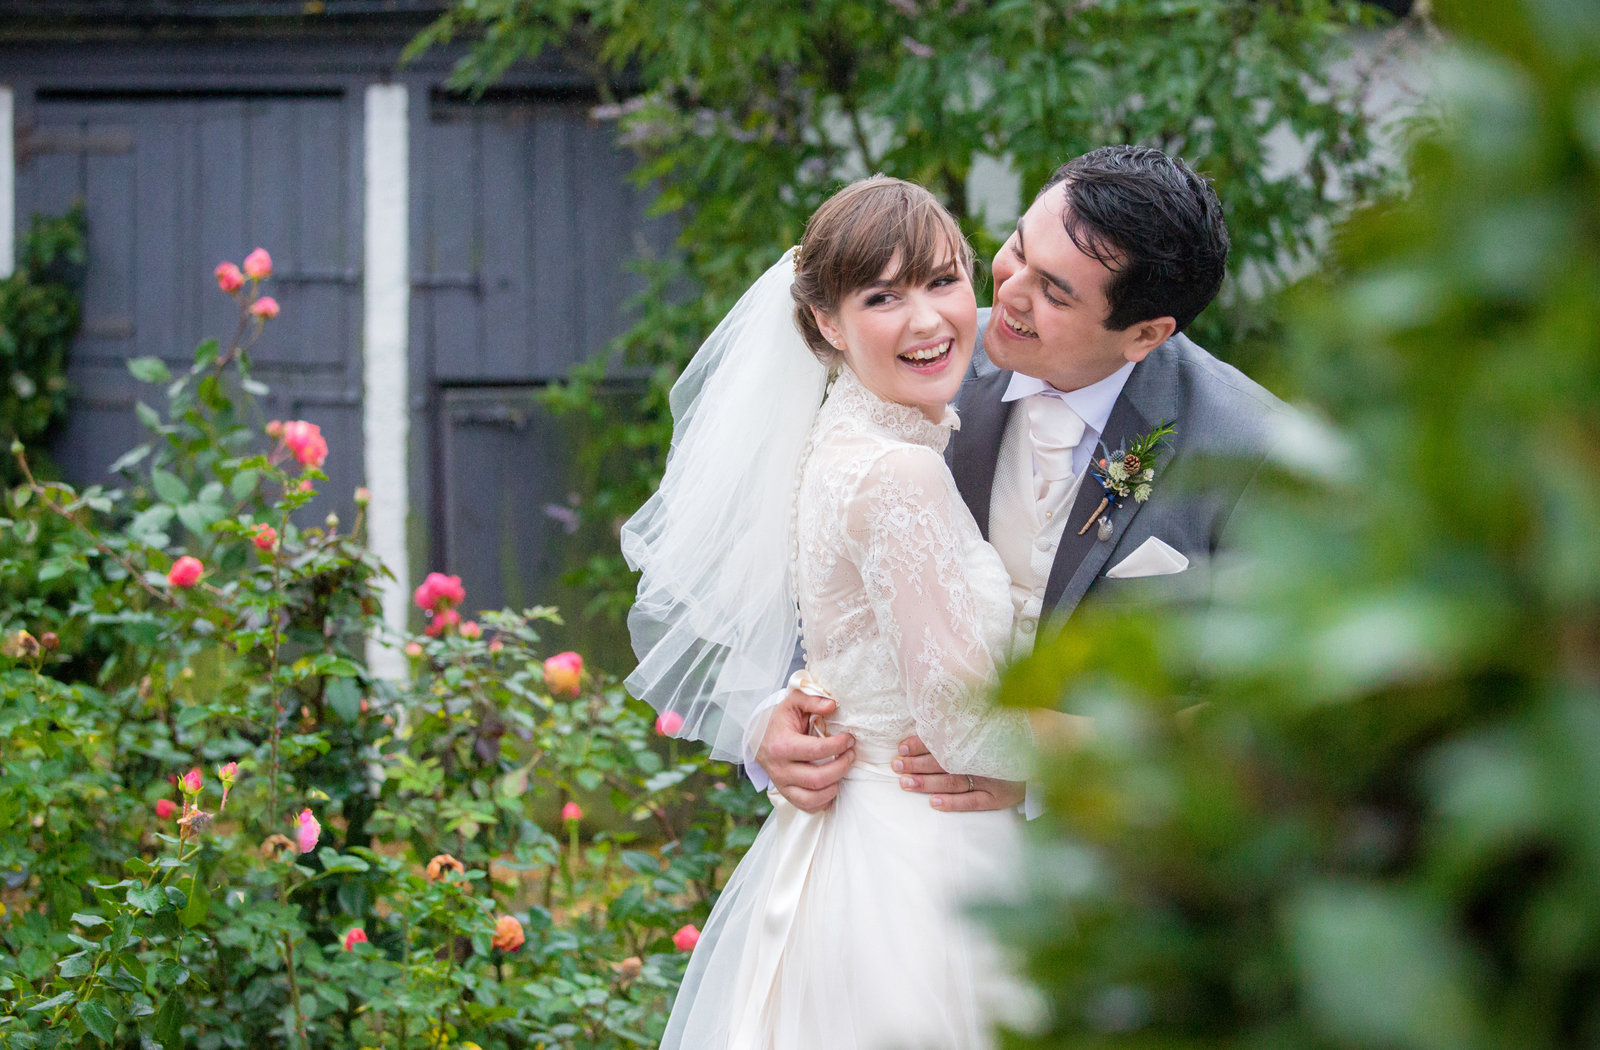 adorlee-077-wedding-photographer-chichester-west-sussex